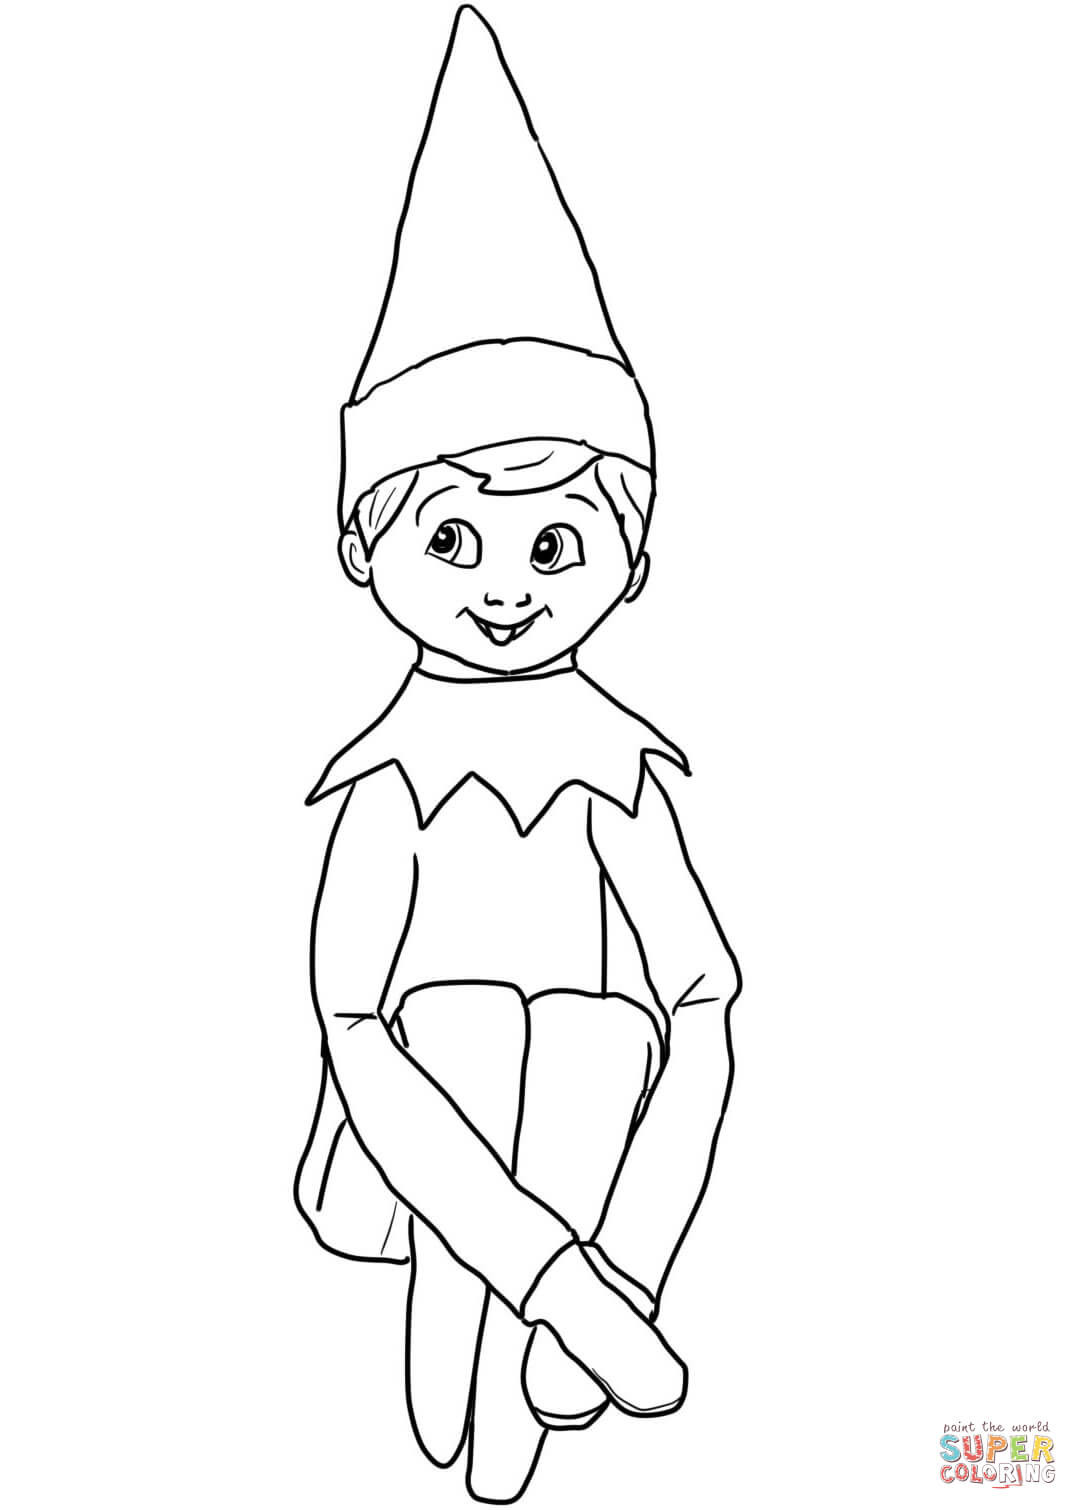 Best ideas about Elf On The Shelf Printable Coloring Pages . Save or Pin Christmas Elf on Shelf coloring page Now.